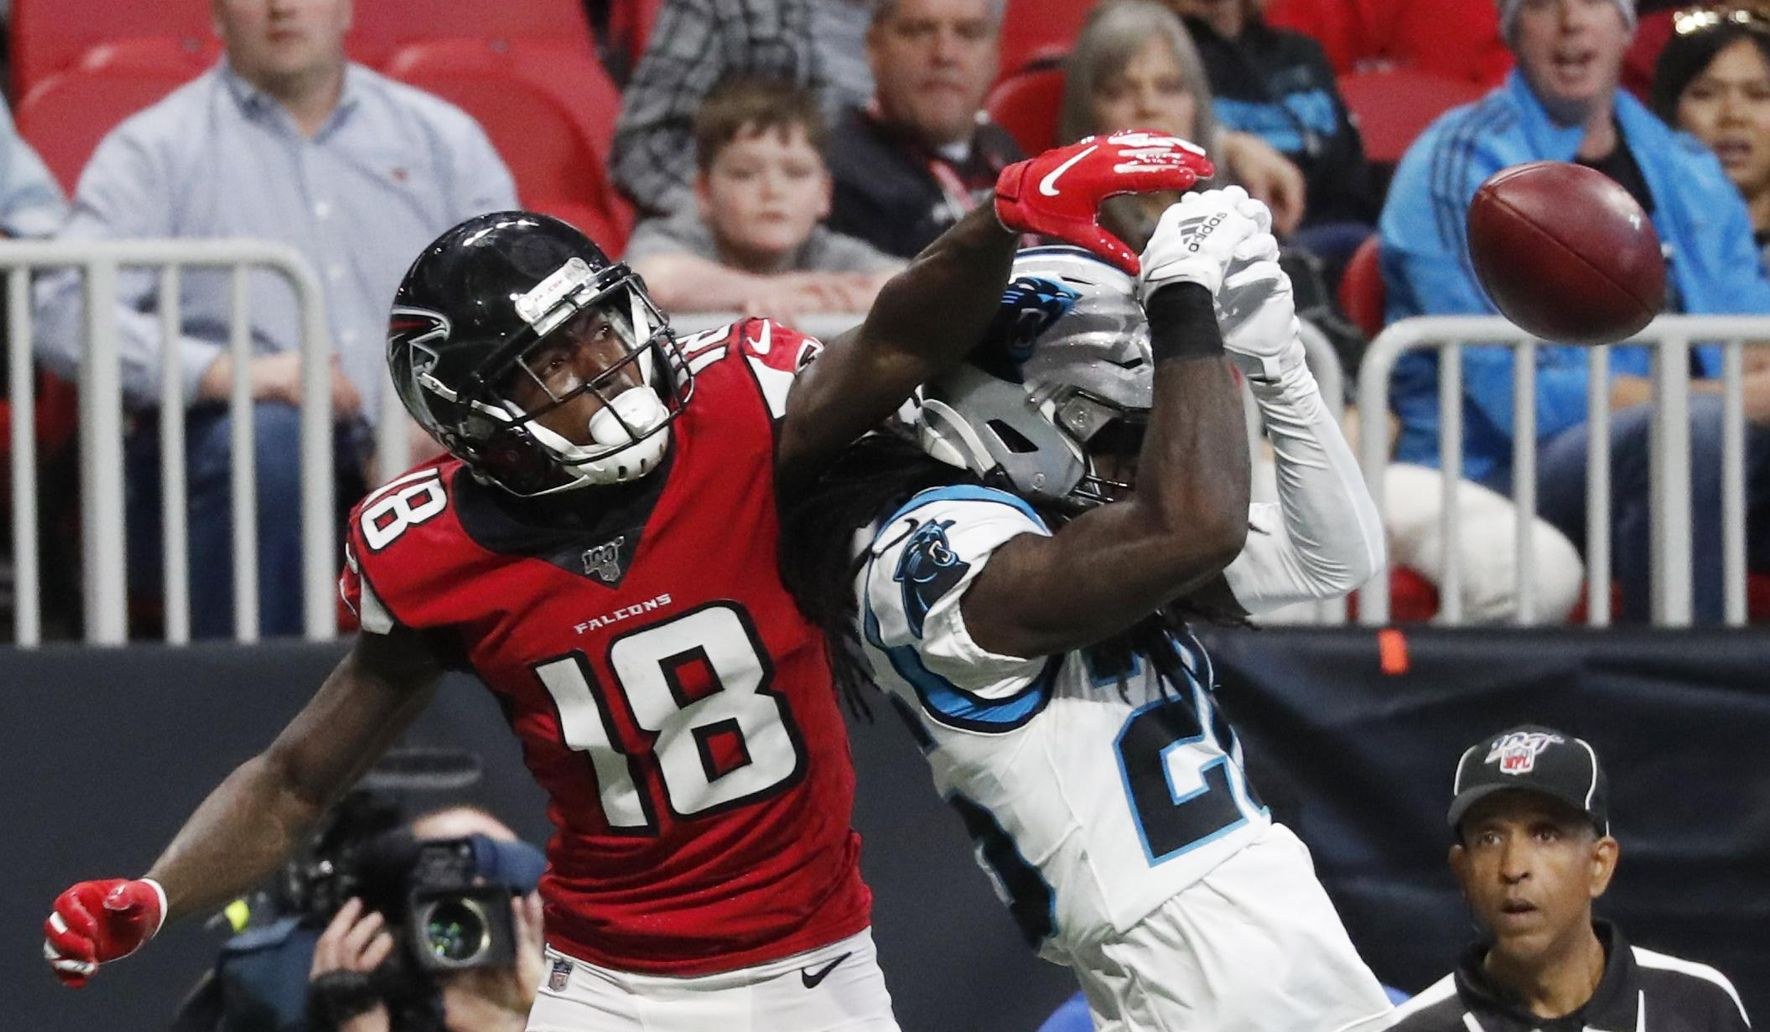 Panthers_falcons_football_88309_c0-88-2112-1319_s1770x1032